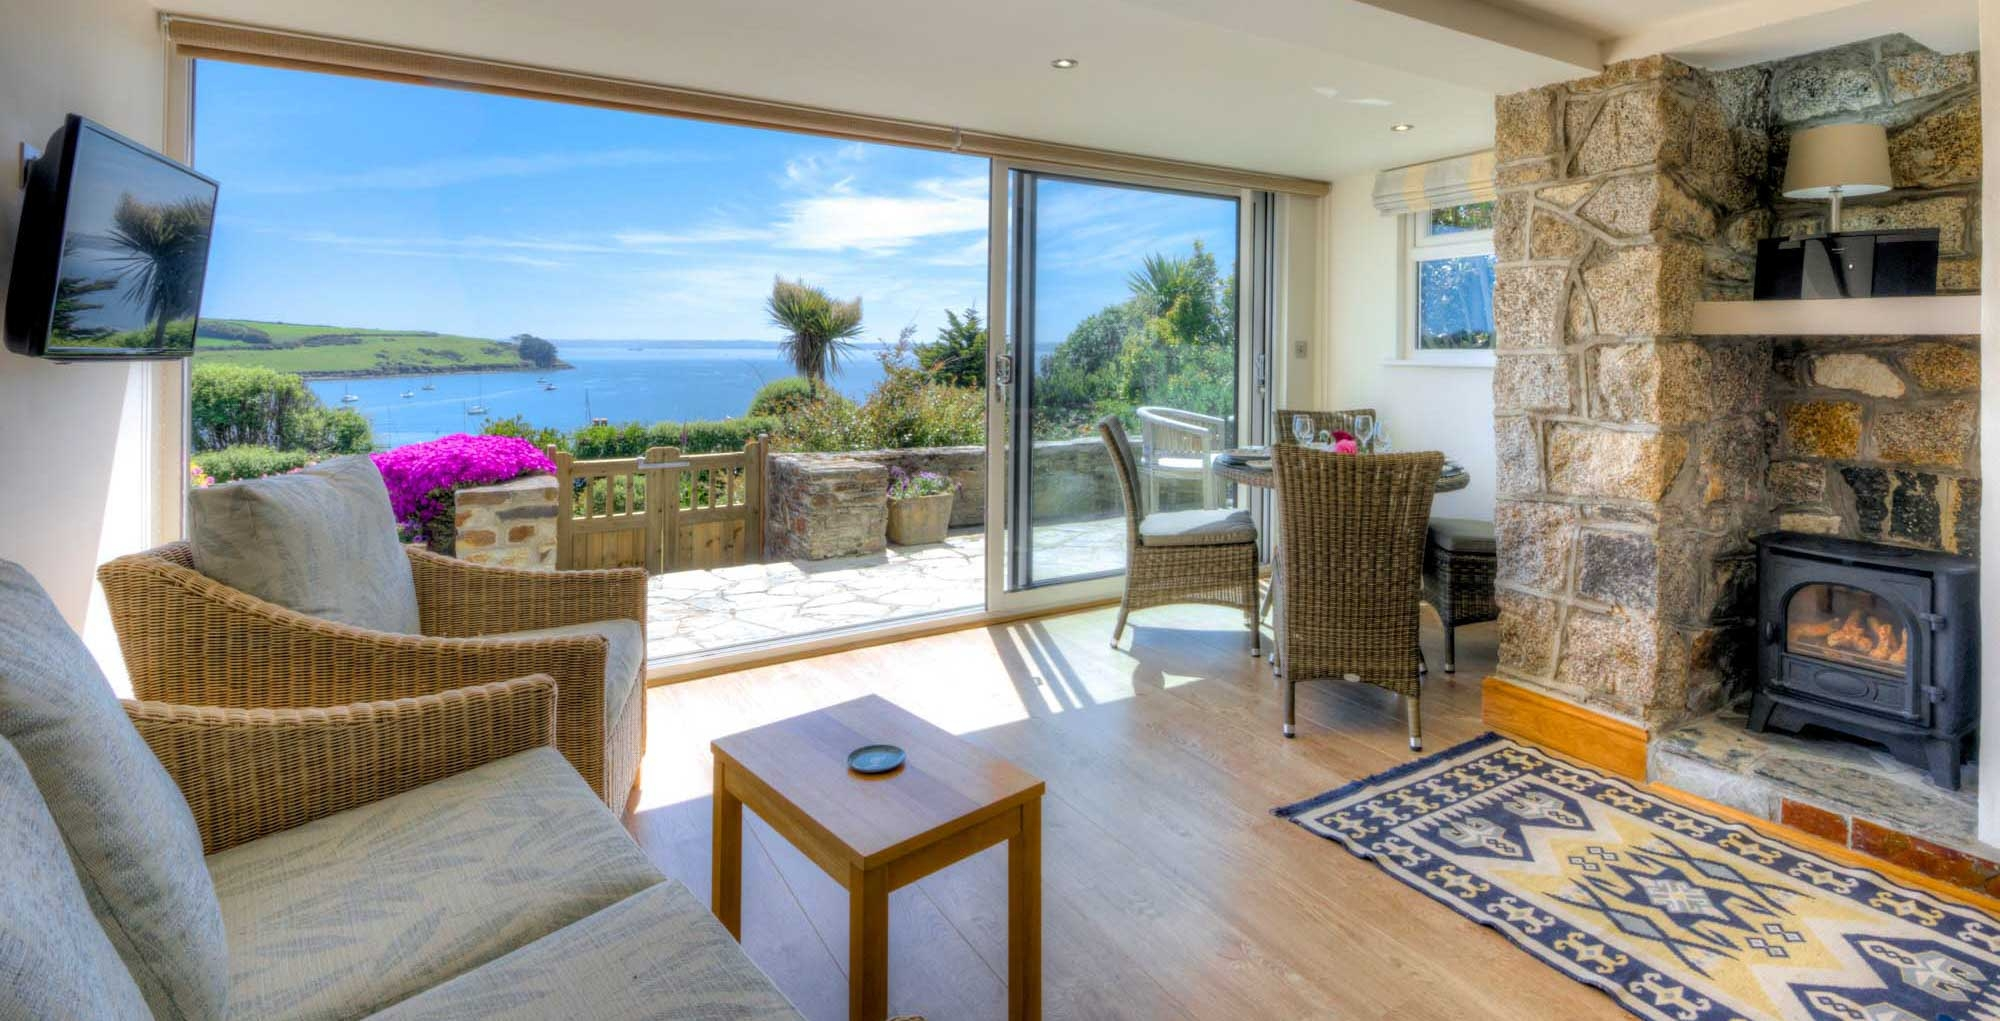 Booking Space To Enjoy Self Catering In Comfy Manners